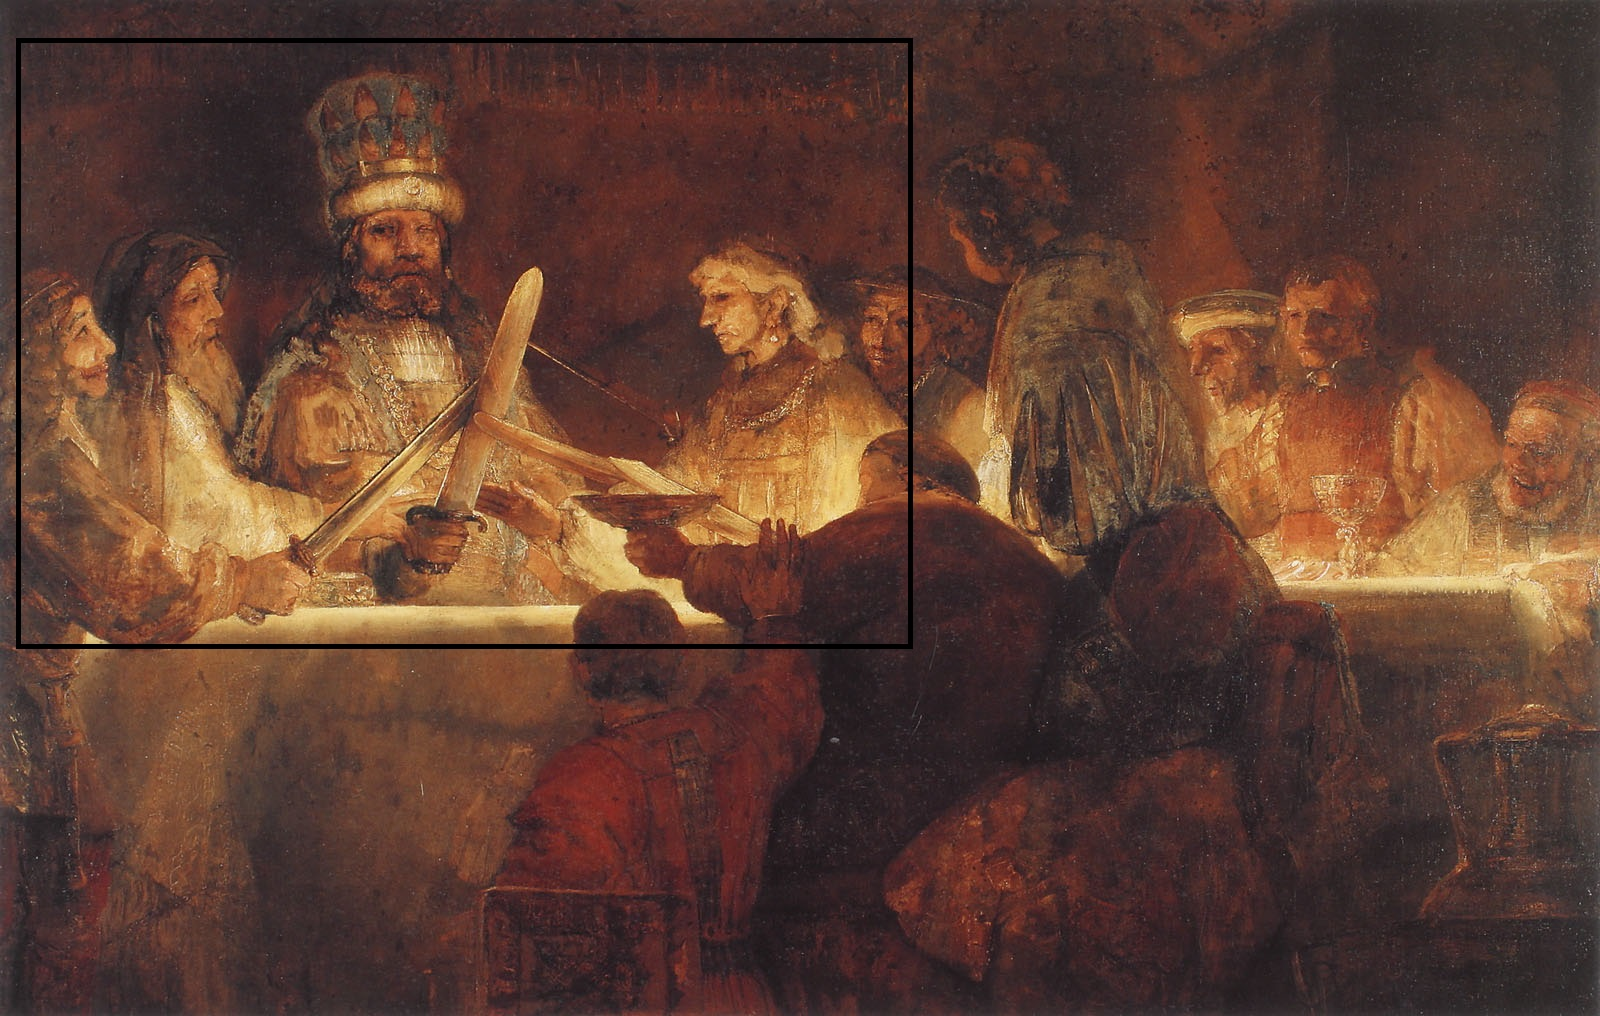 Reproduction of Rembrandt's 'Claudius Civilis', now hanging in the Warburg Institute. The highlighted section was the part of the image which moved Aby Warburg to commission this copy.